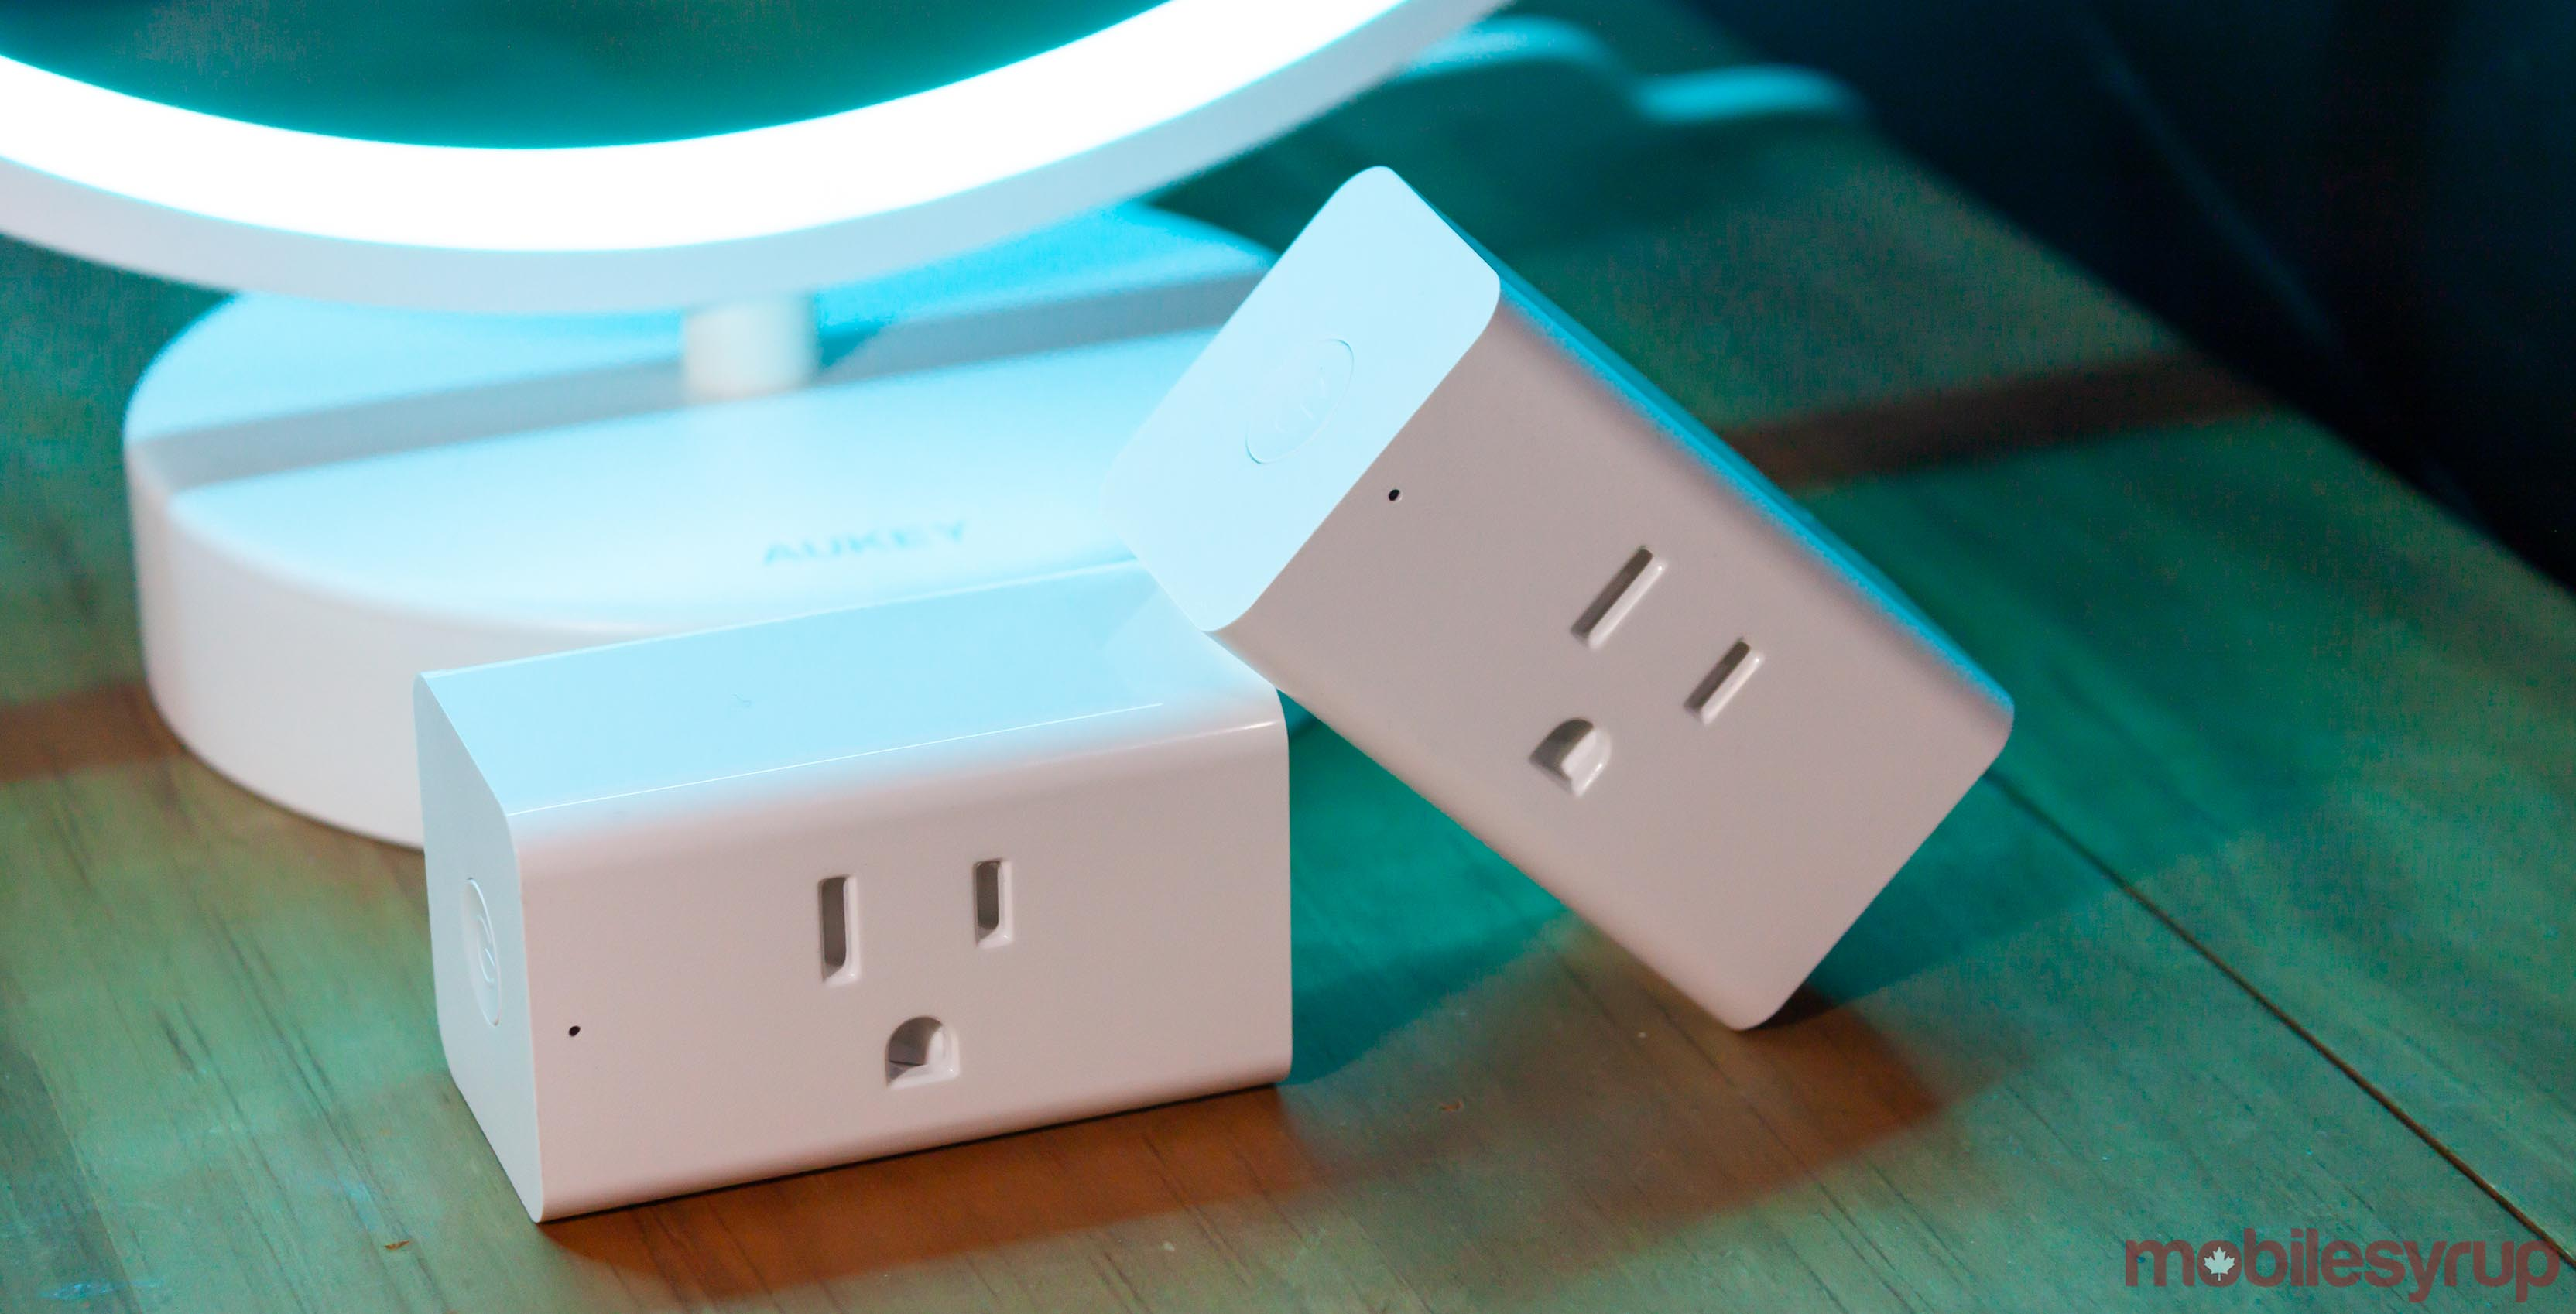 Aukey Wi-Fi Smart Plugs